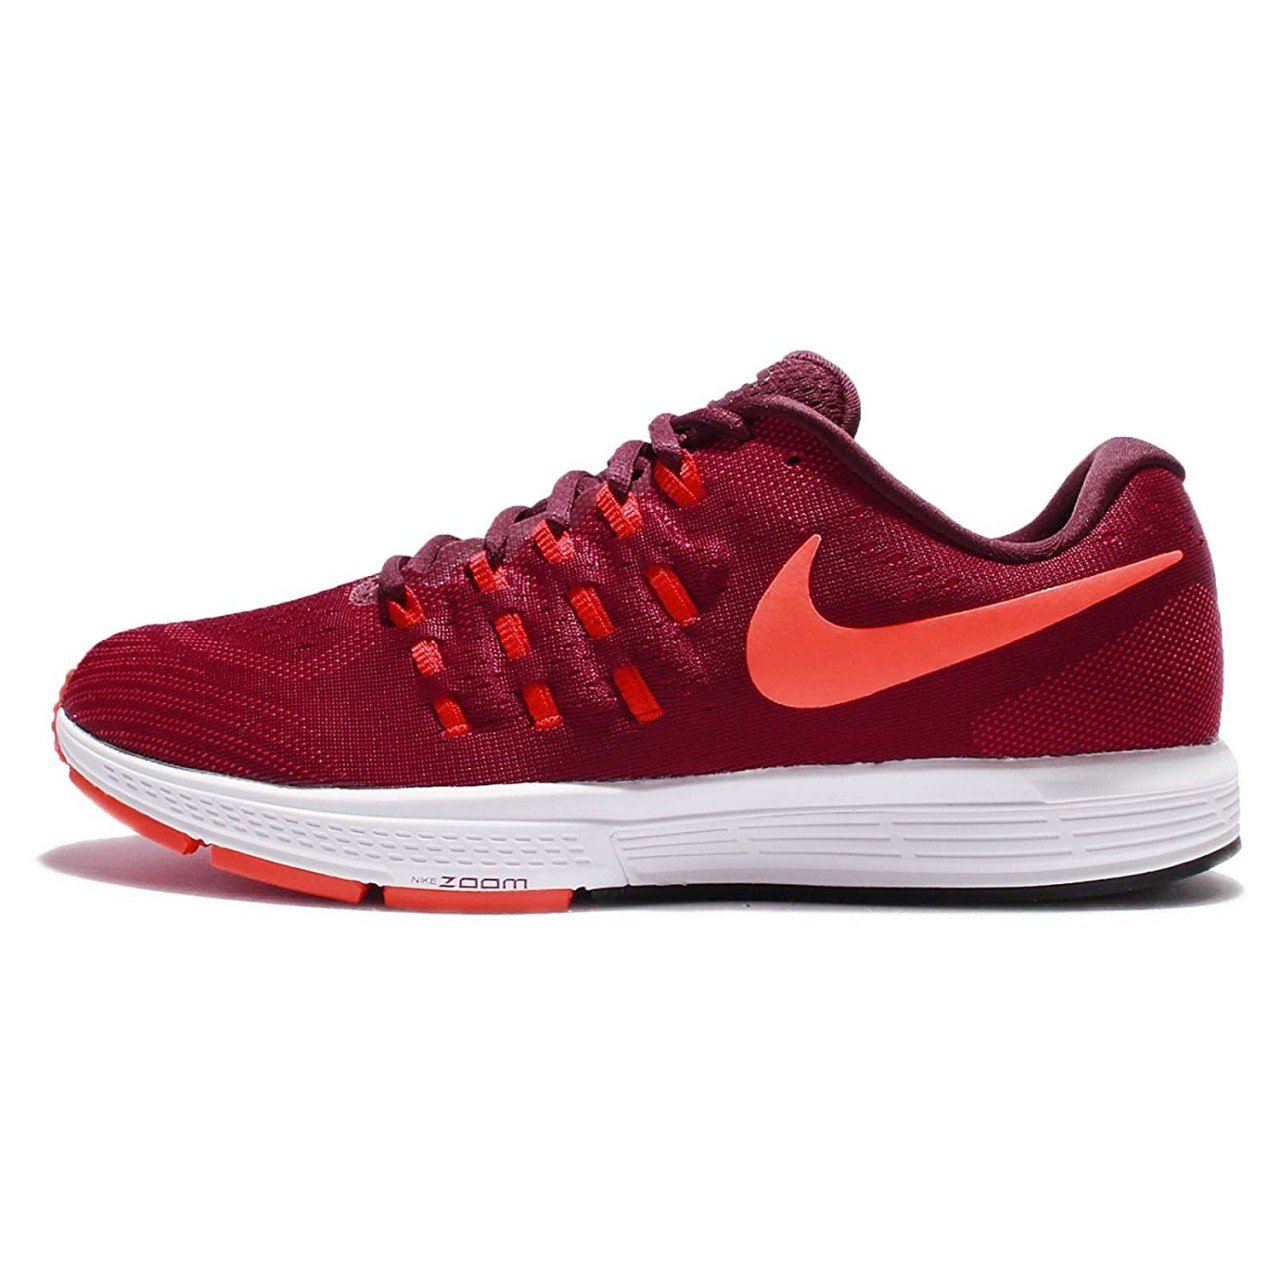 the best attitude 73e9a 9aa7f Nike Men's AIR Zoom Vomero 11 Running Shoes